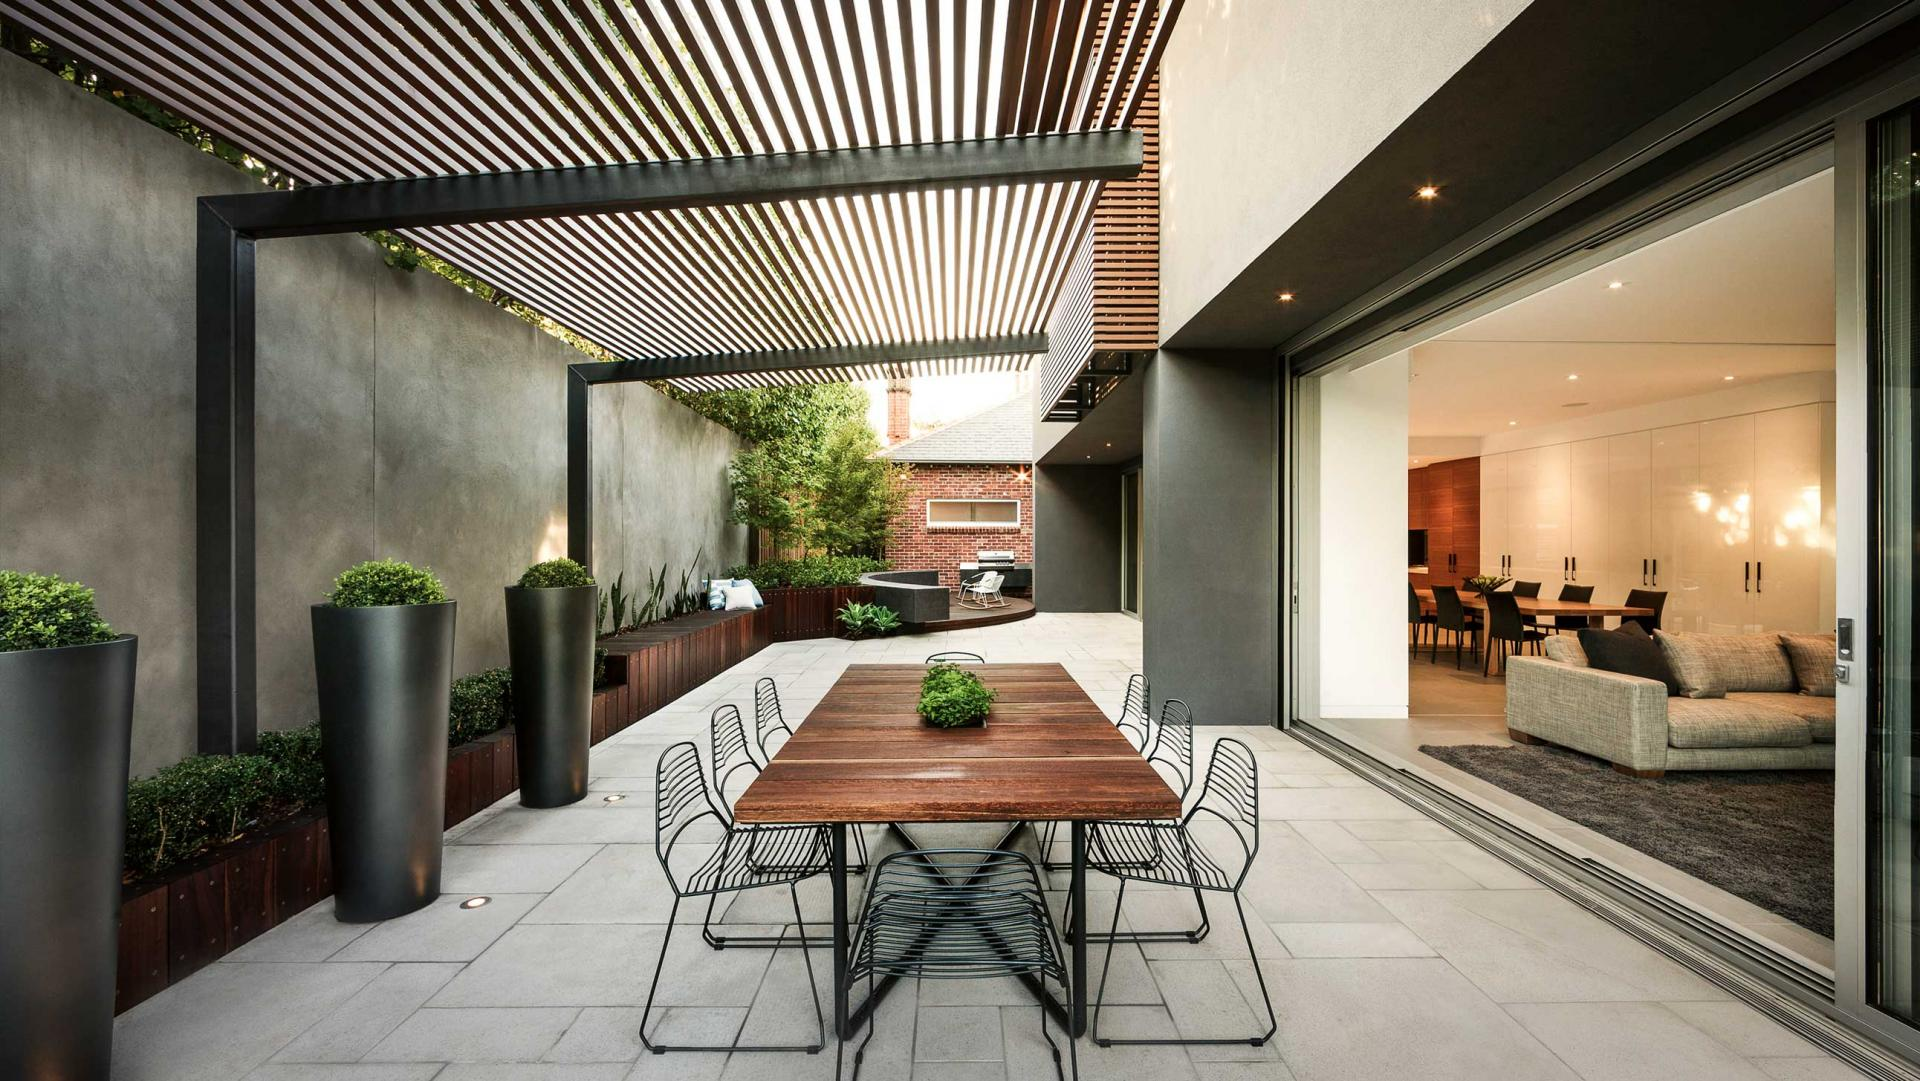 4 reasons to consider pavers for your garden reno - The ... on Garden Entertainment Area Ideas id=94939